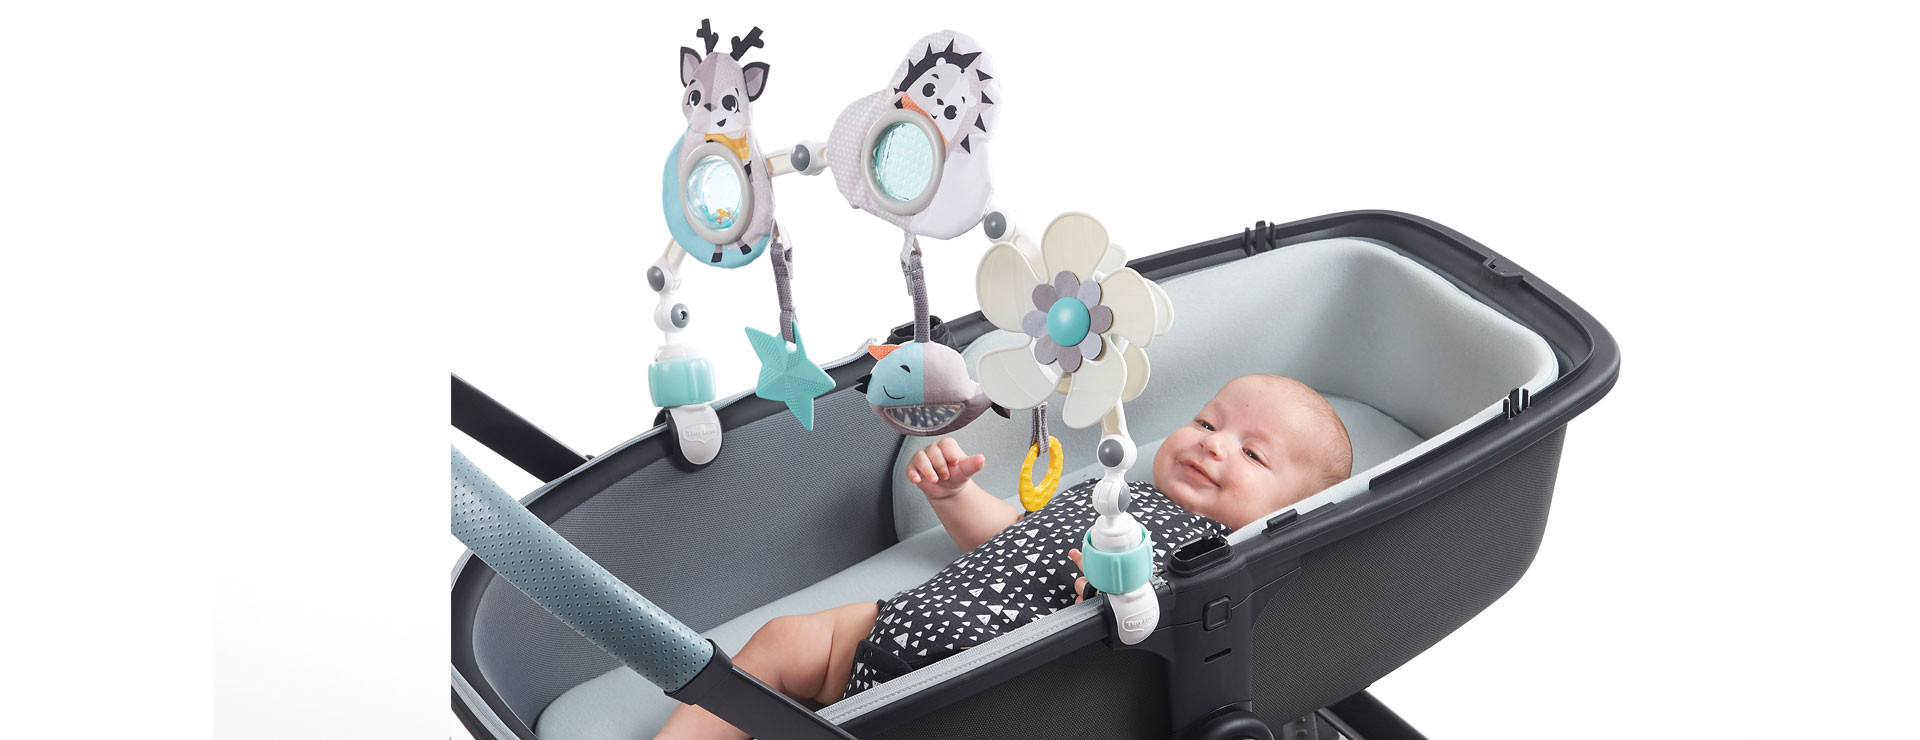 Attaches to most bassinets, for engaging playtime while on-the-go